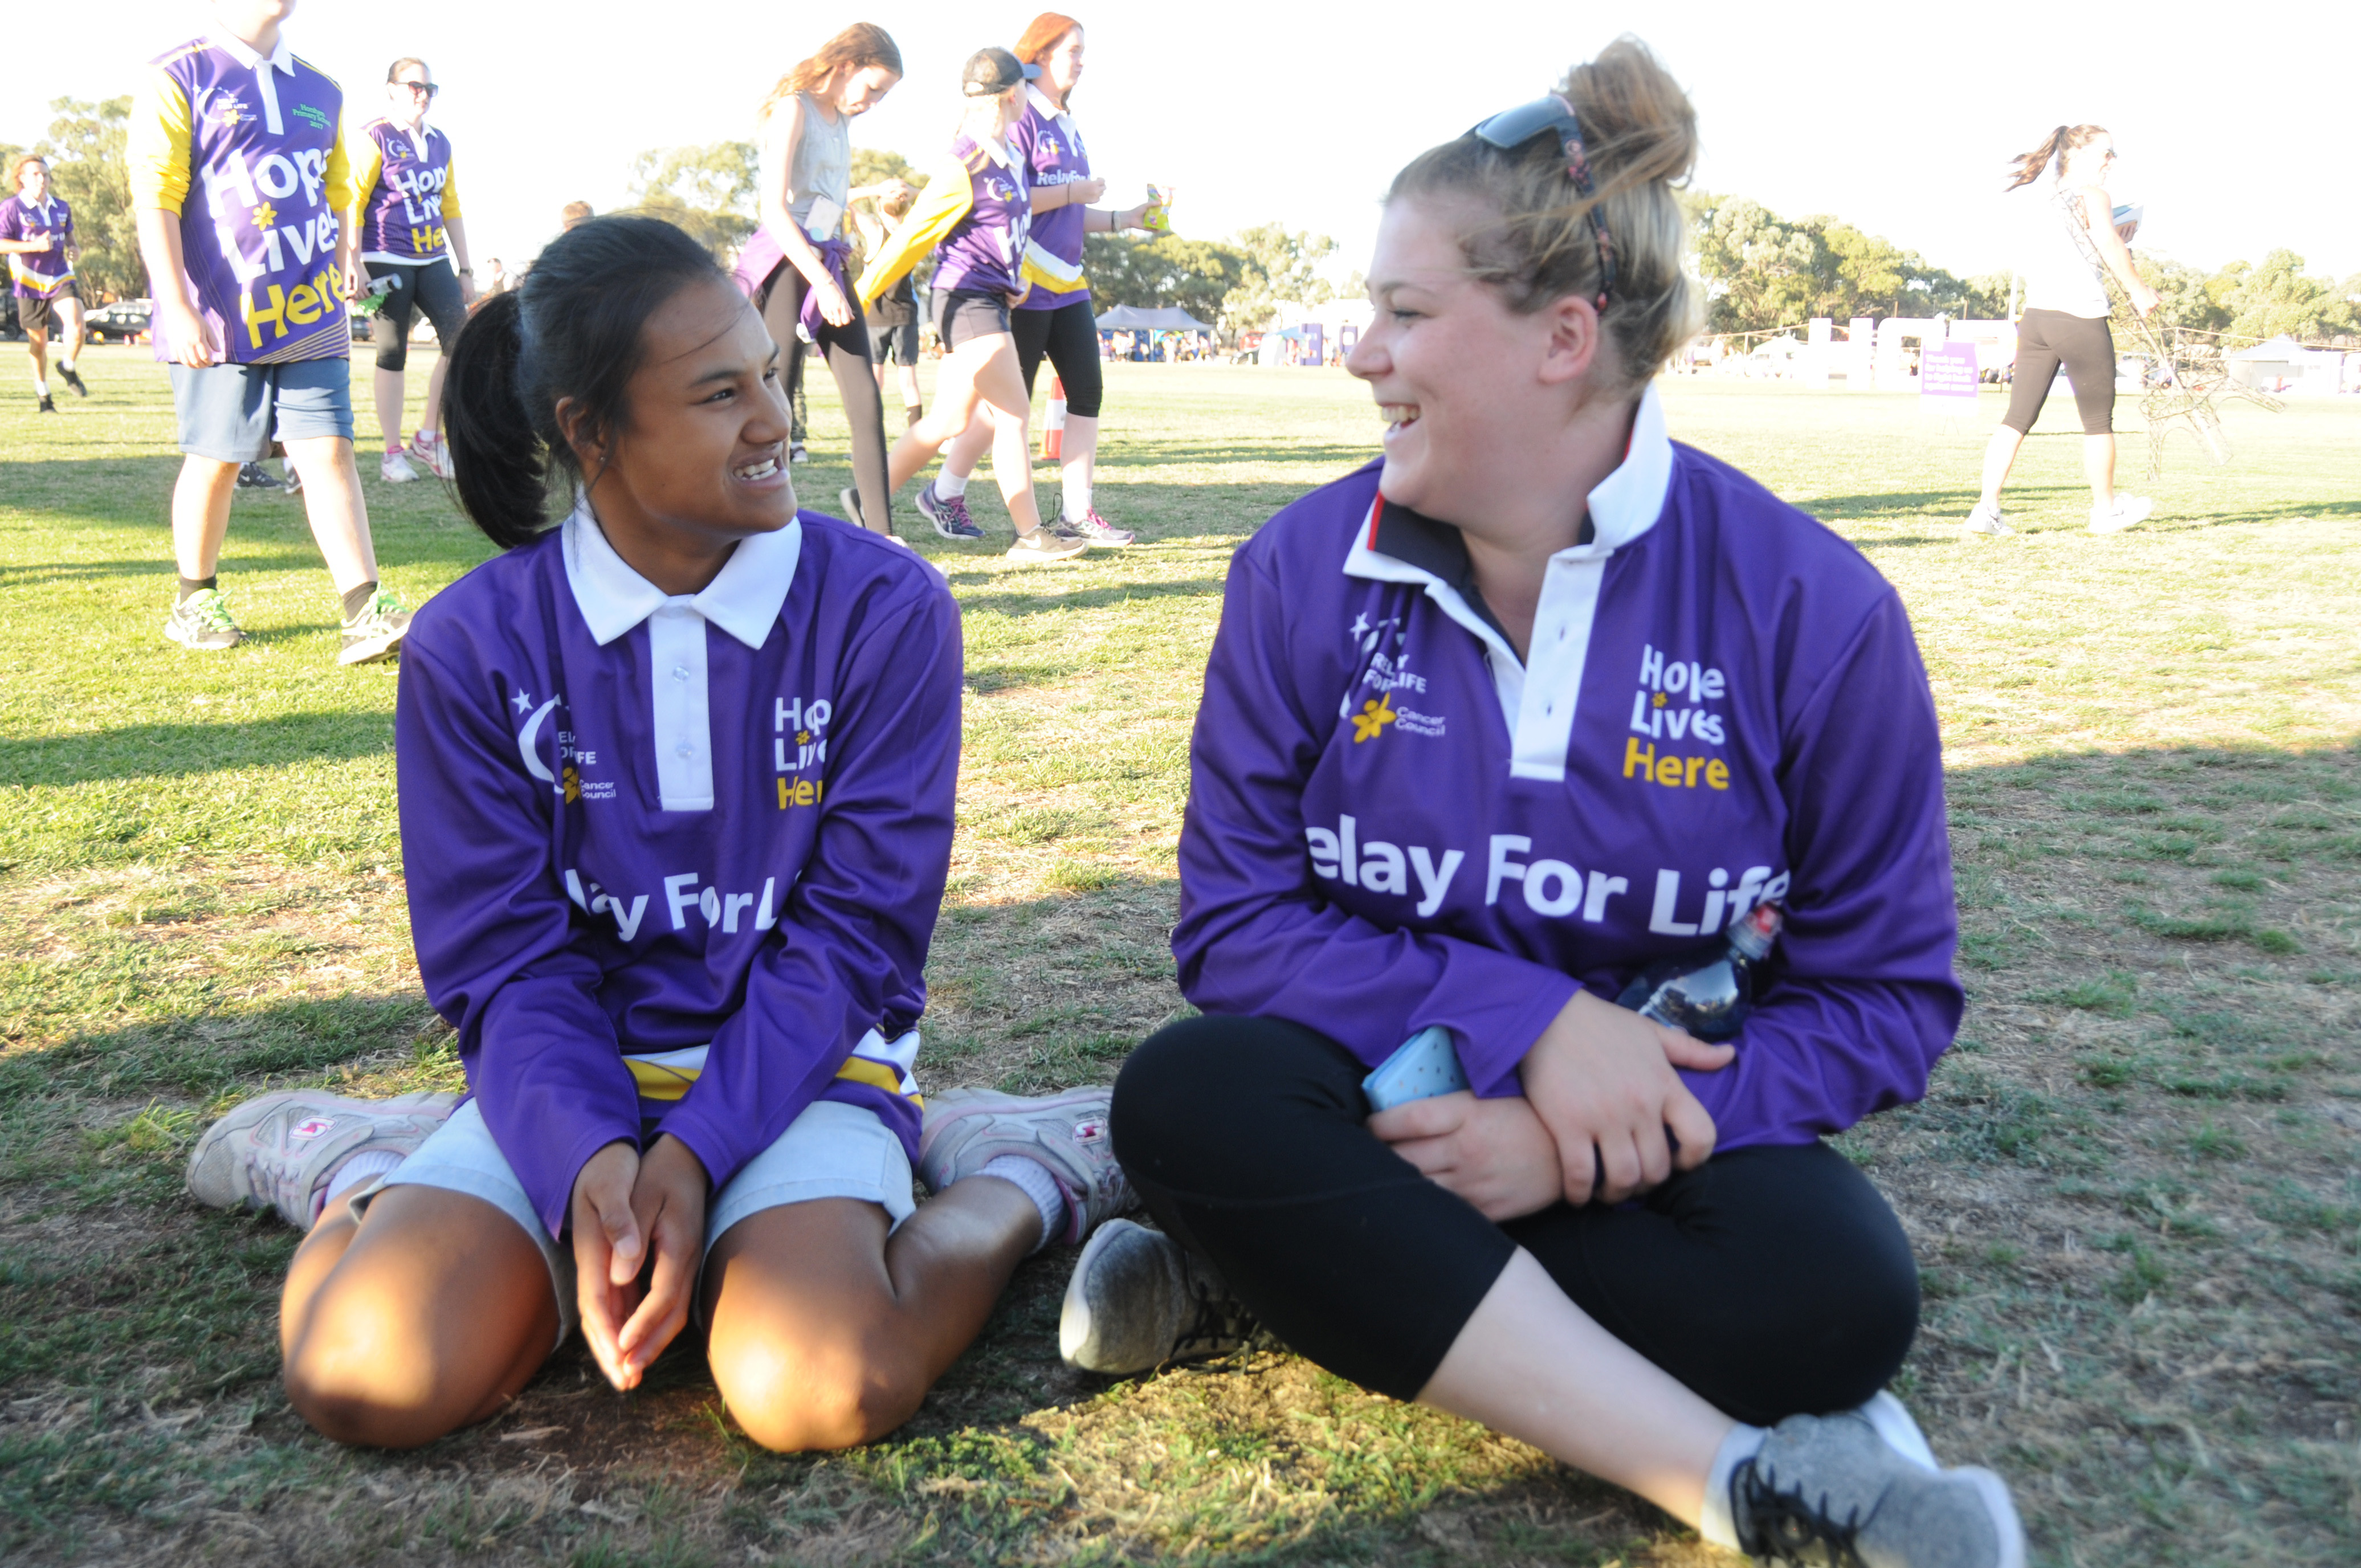 Image - Horsham and District Relay for Life, 170317. Wimmera Uniting Care team